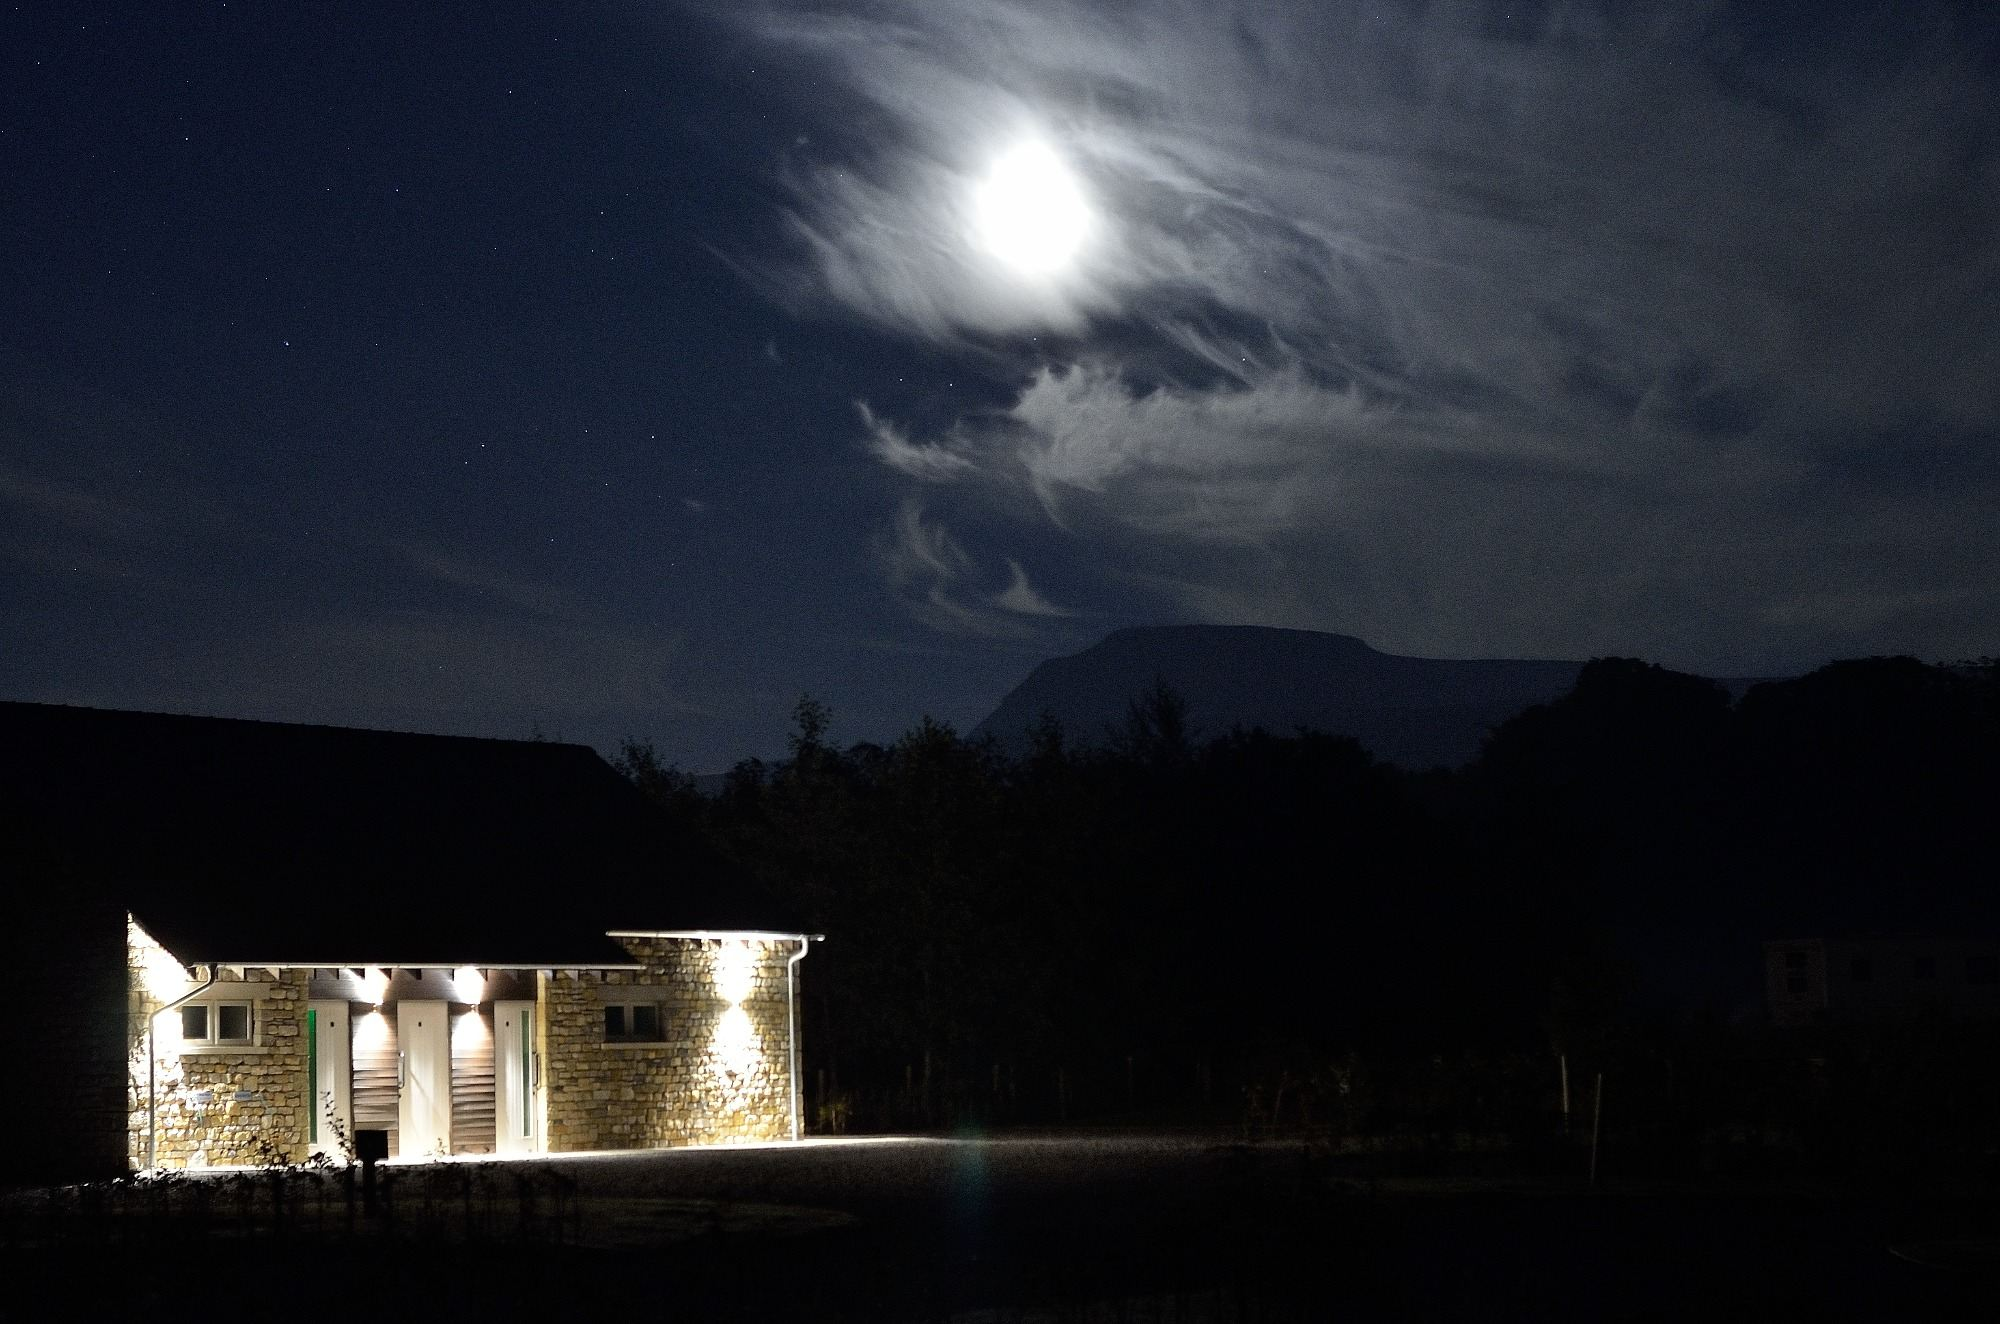 Moon & Ingleborough @ thornbrook barn (photo courtesy of Mark McInnes)